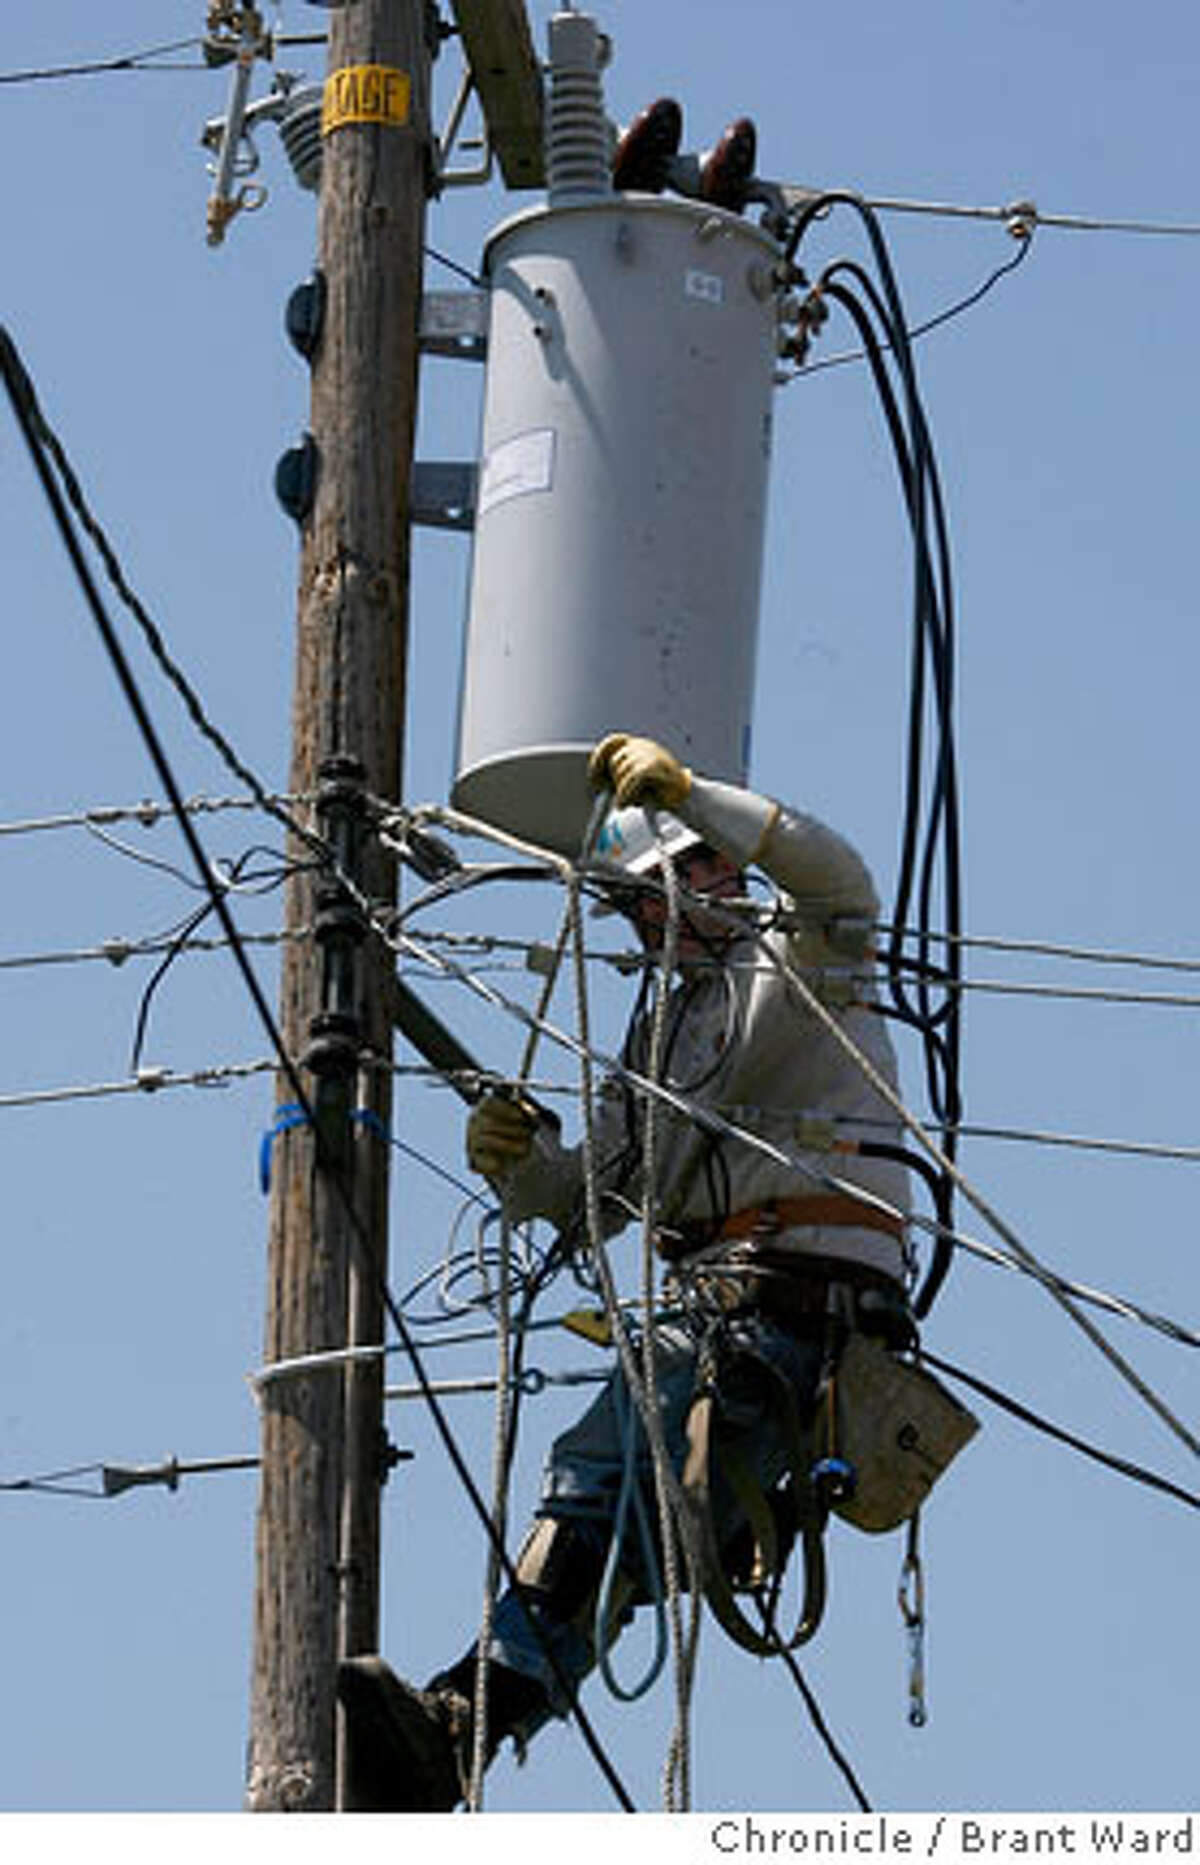 PG&E workers replaced a transformer that blew up just off Hill Park Drive in San Jose...this site has had several transformer malfunctions since the weekend. In South San Jose, hundreds of people are still without power. Many lost their power over the weekend when temperatures were in the 100s. PG&E crews from around the Bay Area are busy replacing blown transformers which couldn't take the prolonged heat. {Brant Ward/The Chronicle} 7/25/06